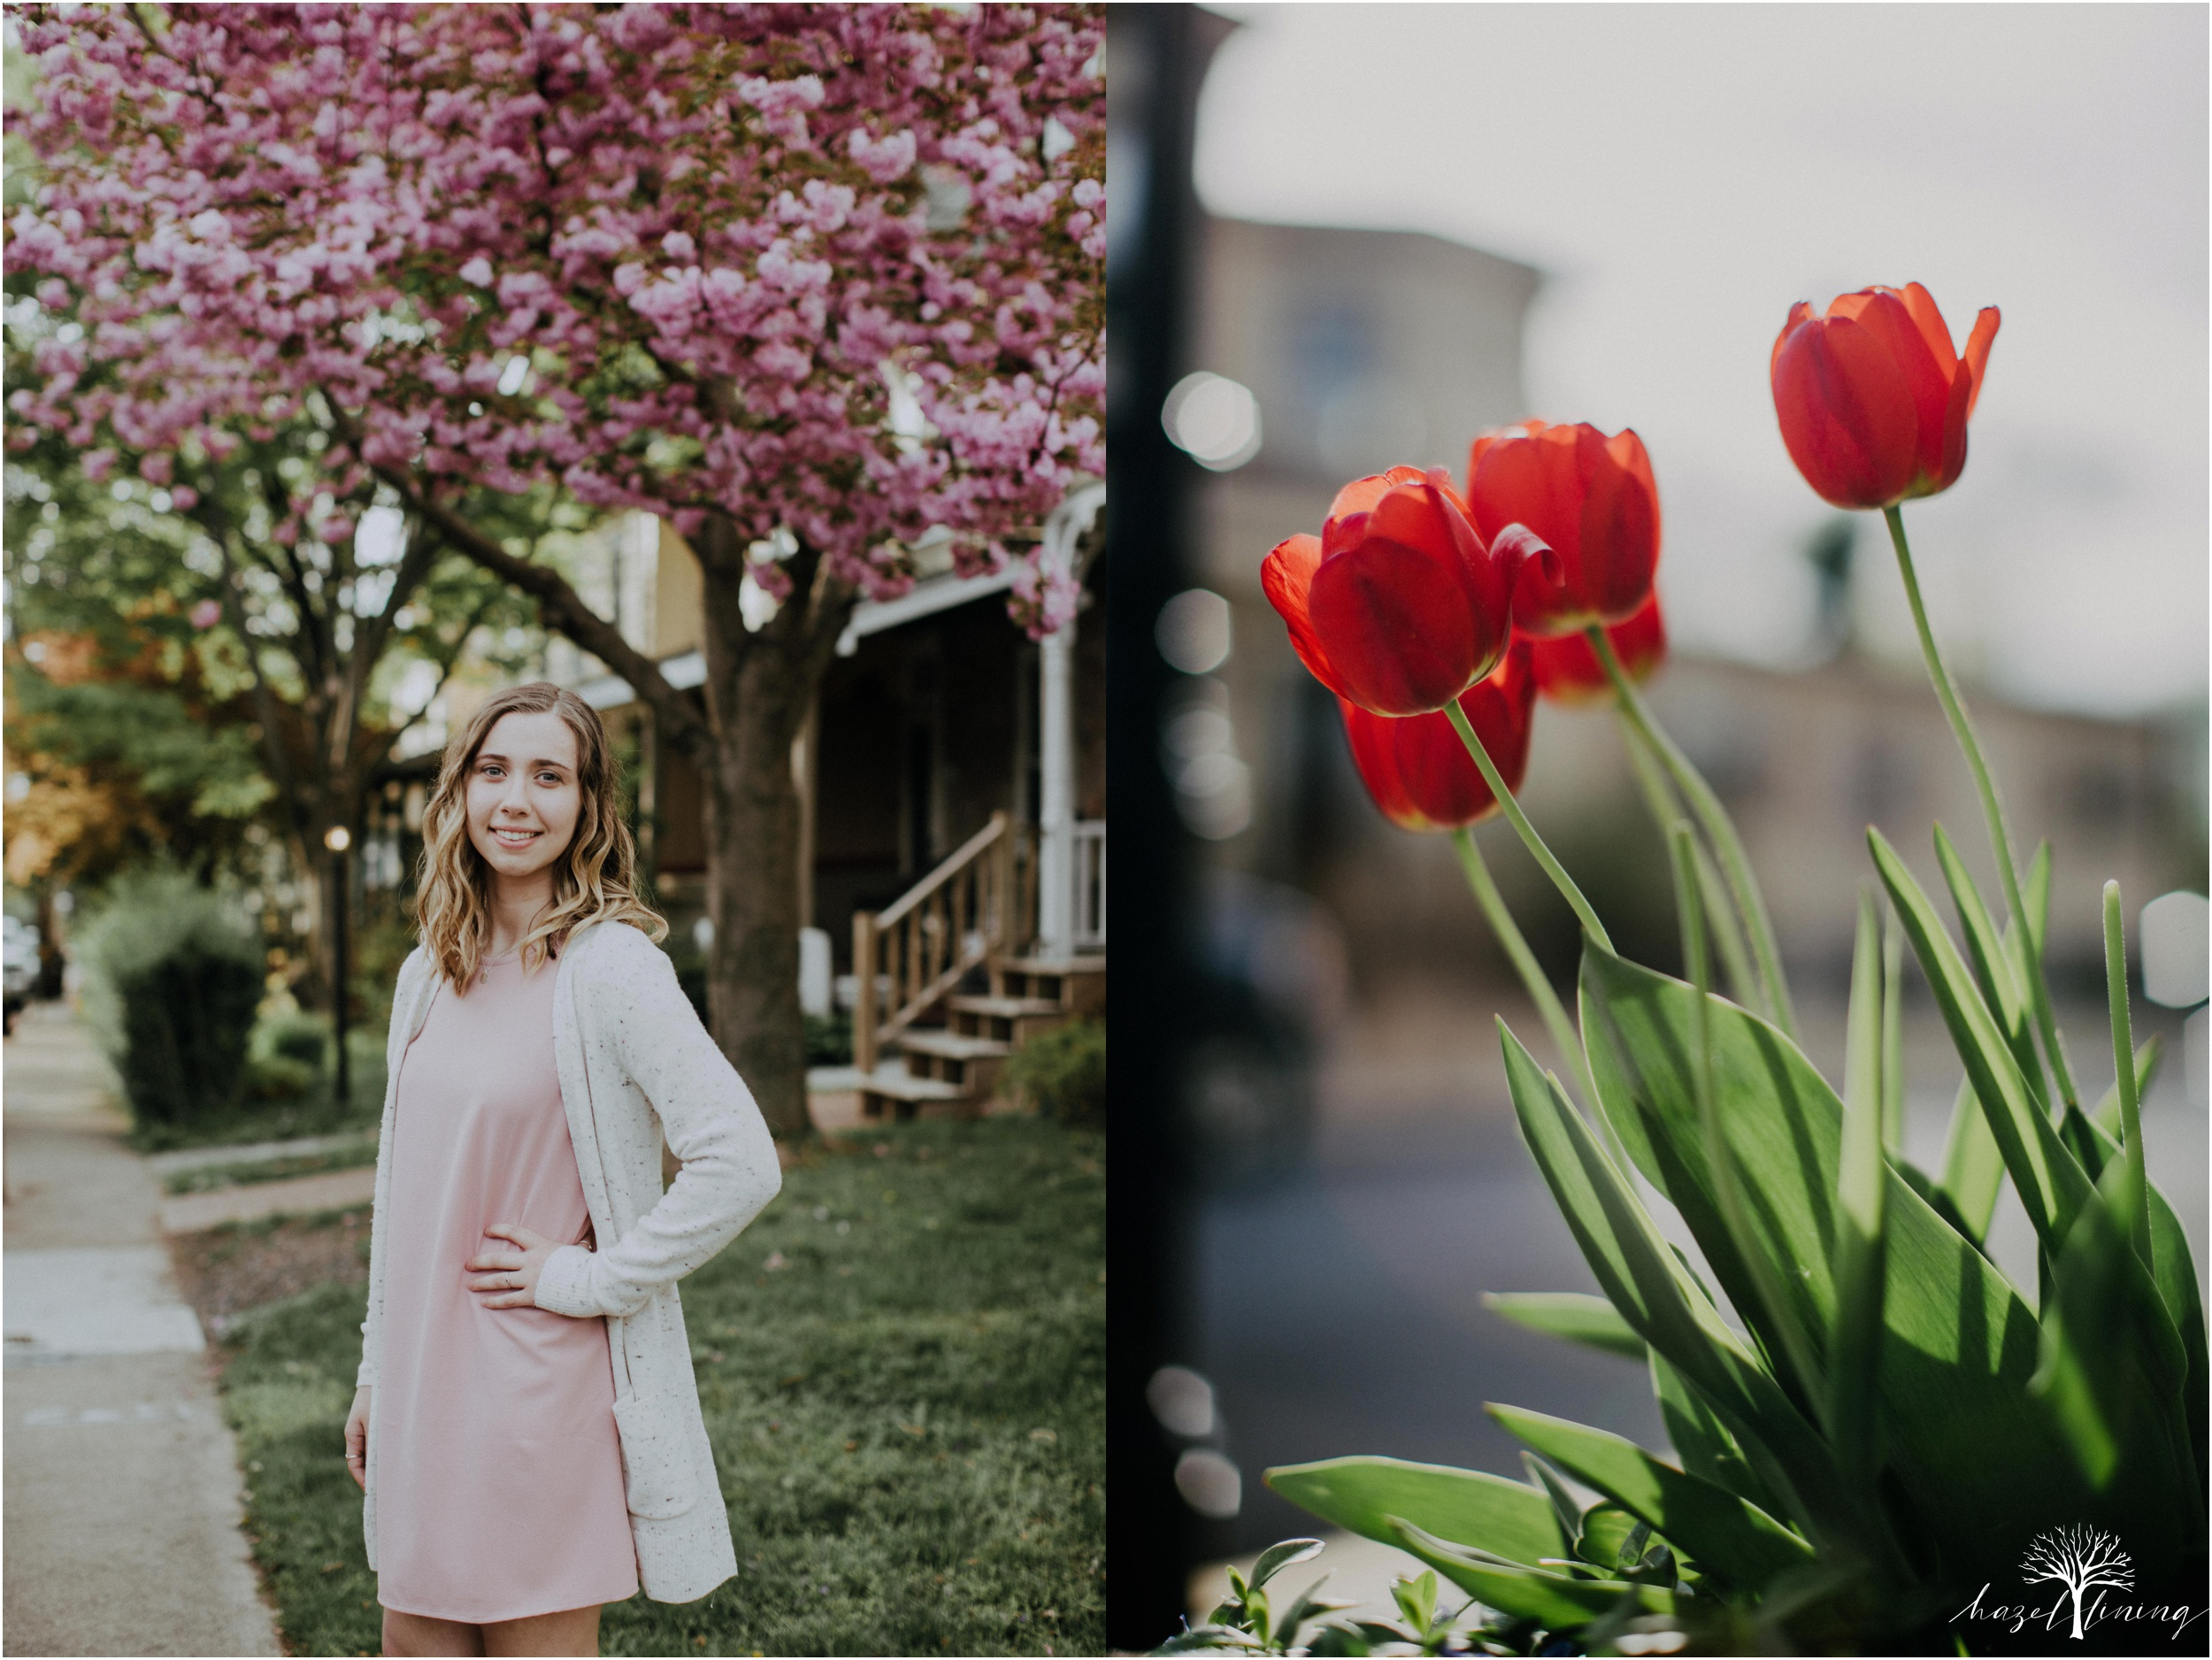 maddie-kiser-senior-portrait-session-doylestown-pennsylvania-spring-hazel-lining-photography-destination-elopement-wedding-engagement-photography-year-in-review_0008.jpg